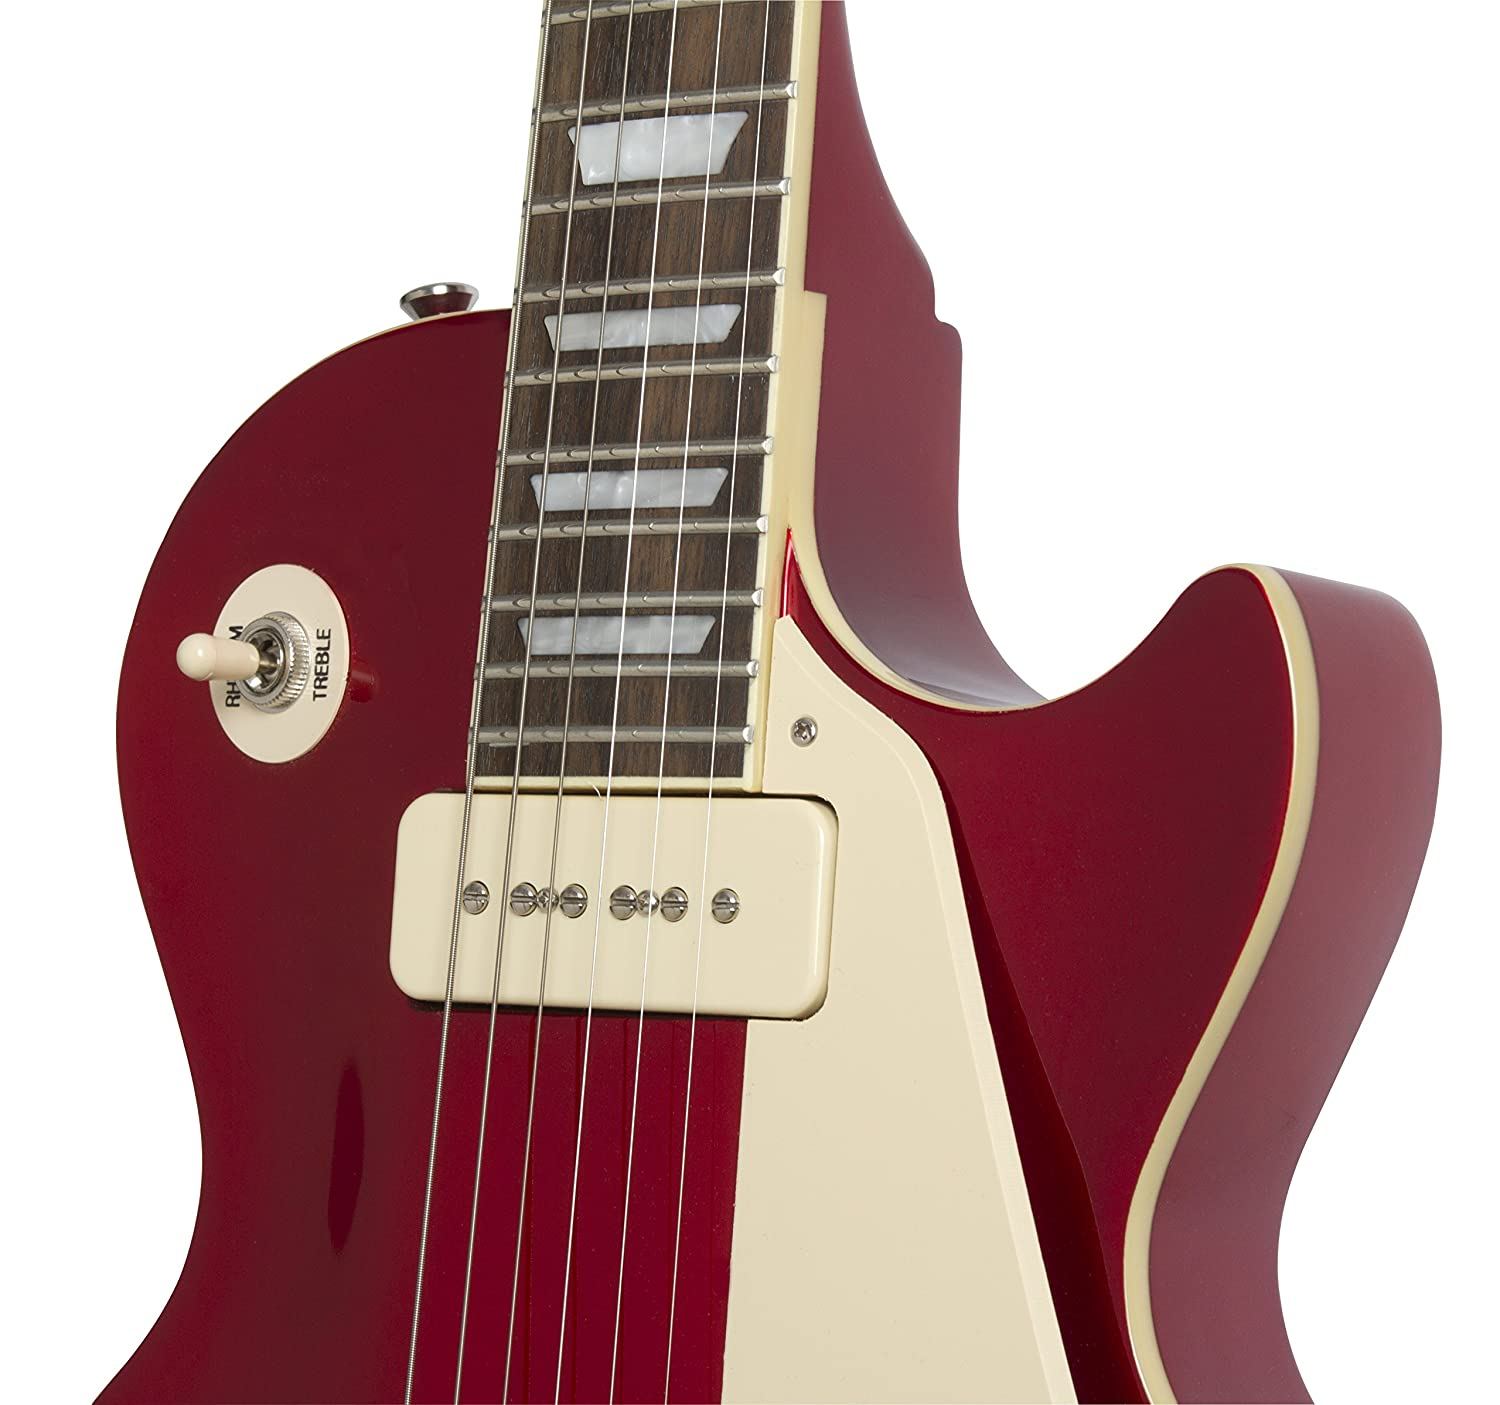 Epiphone Ltd Ed 1956 Les Paul Standard PRO - Guitarra eléctrica, color rojo (Amazon Exclusivo)